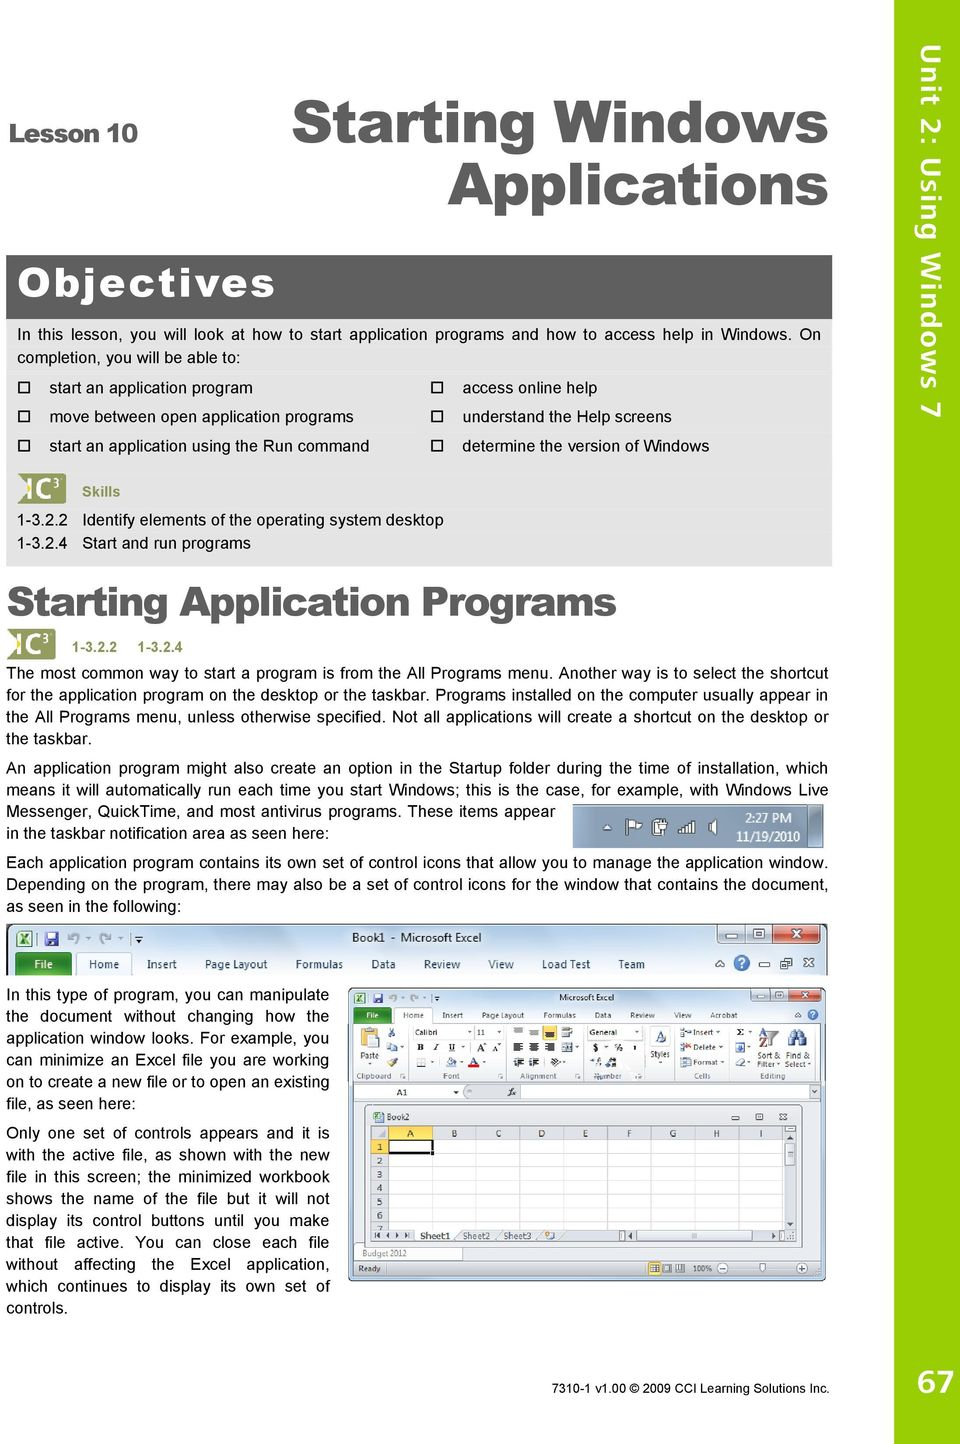 determine the version of Windows Unit 2: Using Windows 7 Skills 1-3.2.2 Identify elements of the operating system desktop 1-3.2.4 Start and run programs Starting Application Programs 1-3.2.2 1-3.2.4 The most common way to start a program is from the All Programs menu.